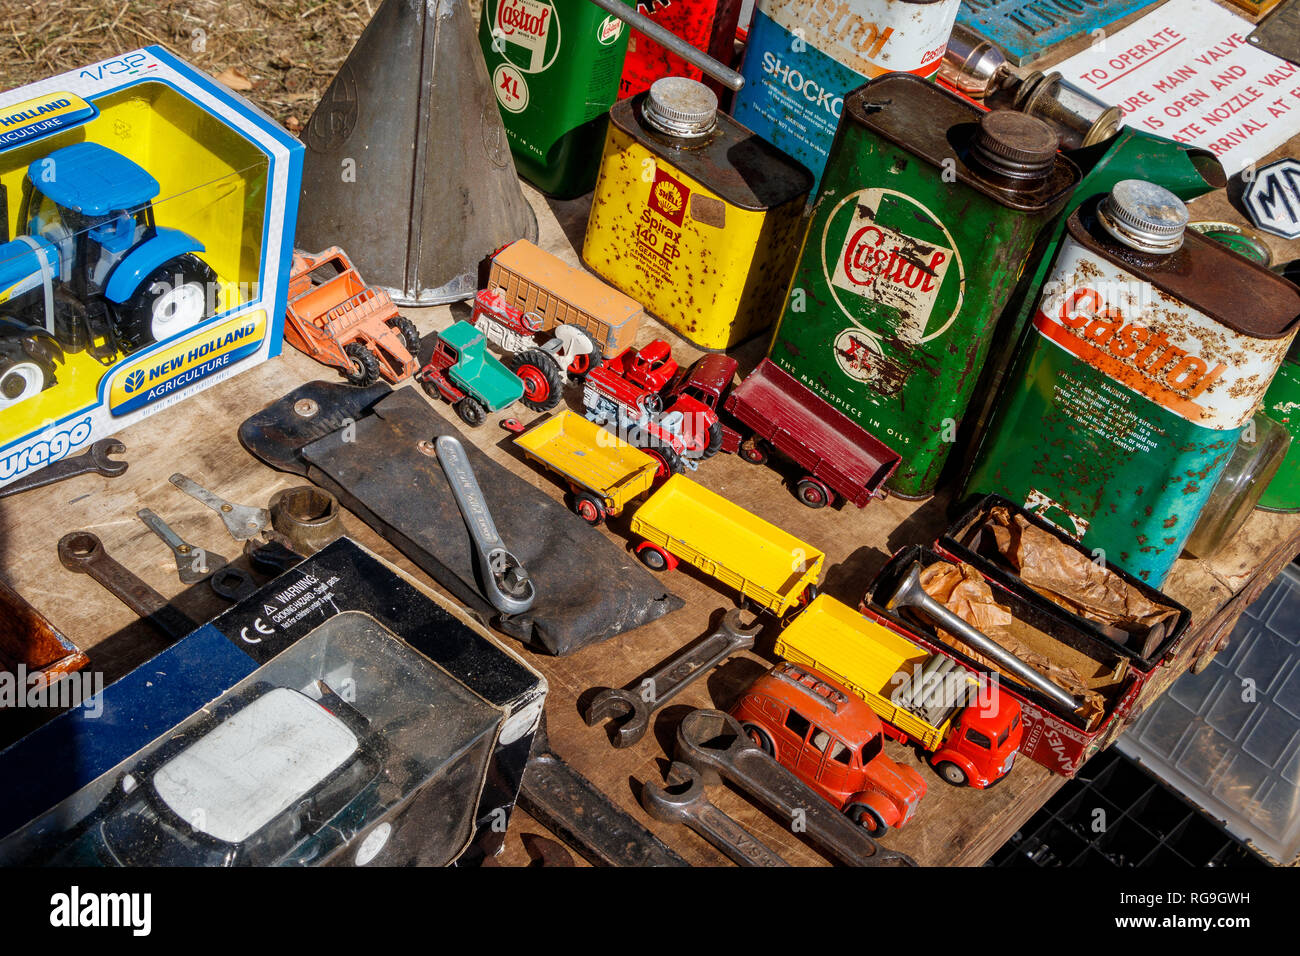 Table of secondhand transport toys, oil cans, and tools. Stock Photo